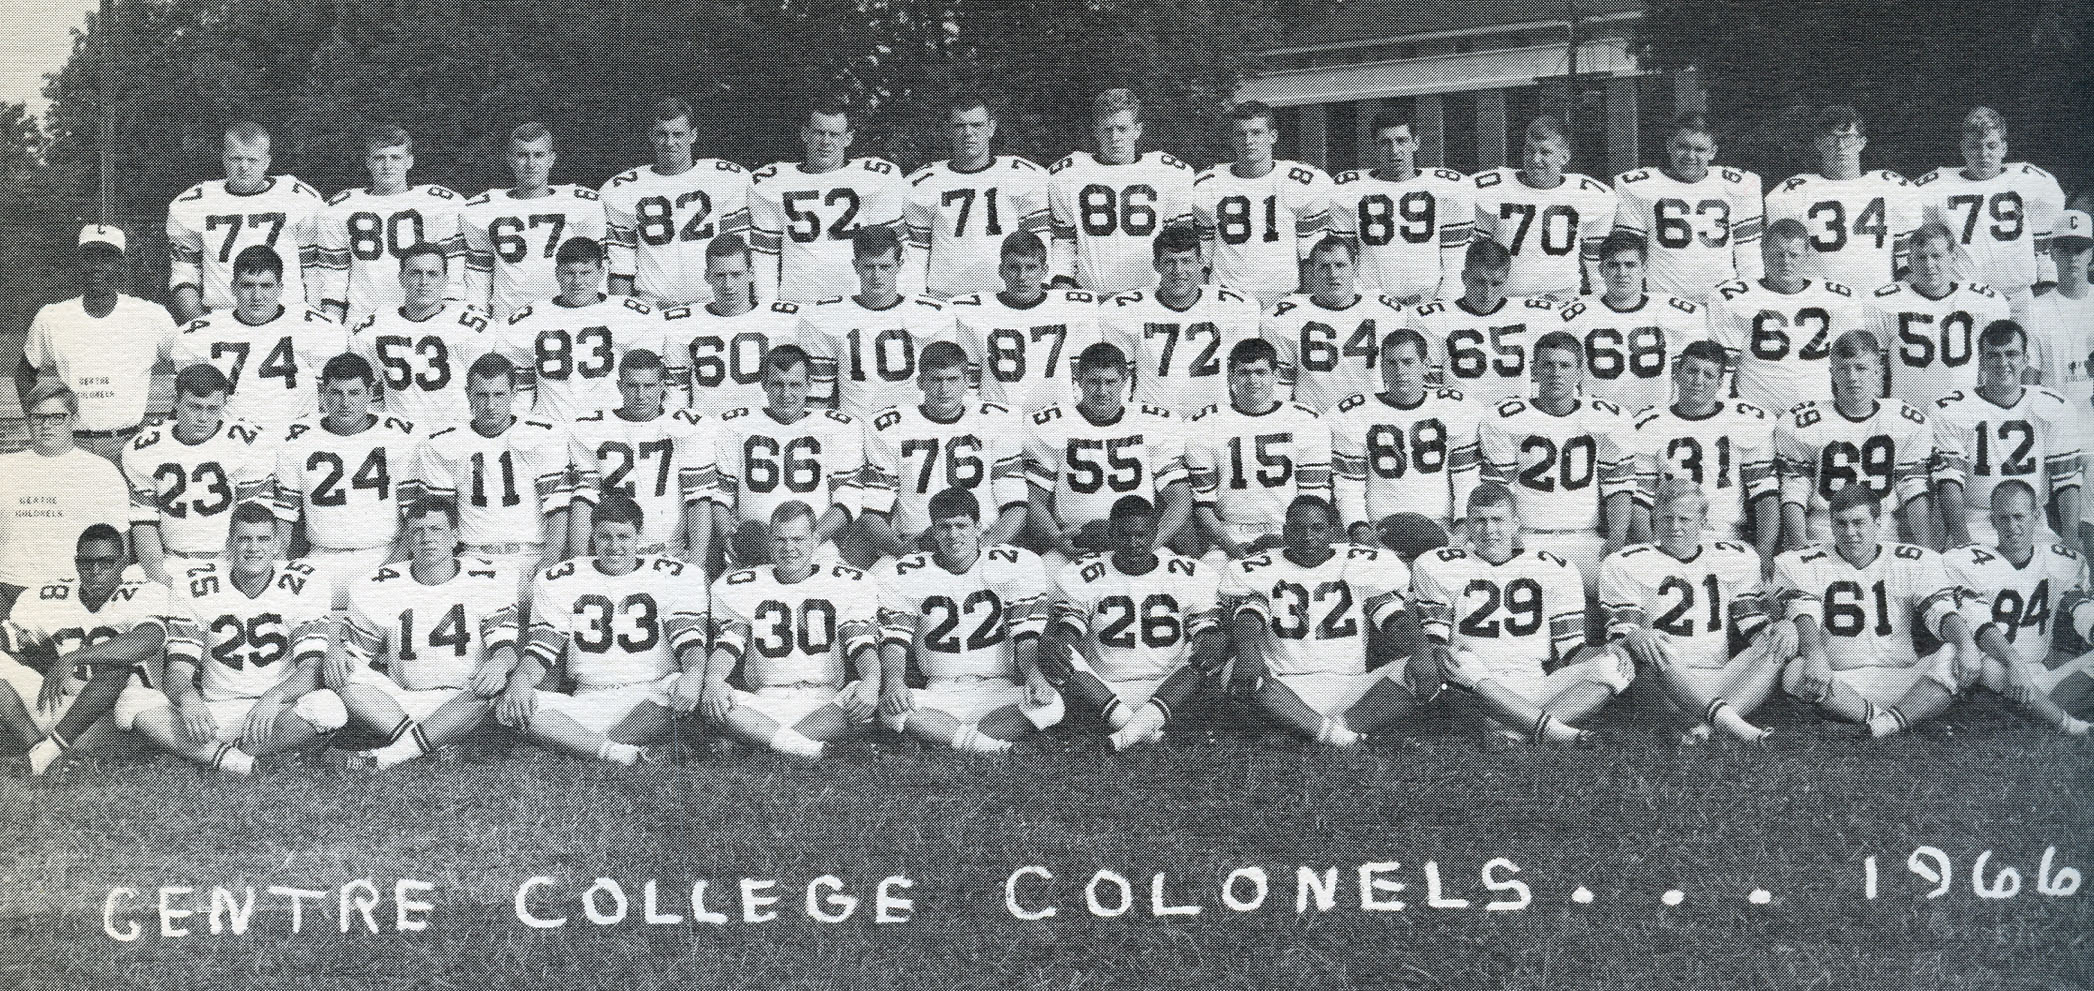 Yearbook 1966 (Football players)